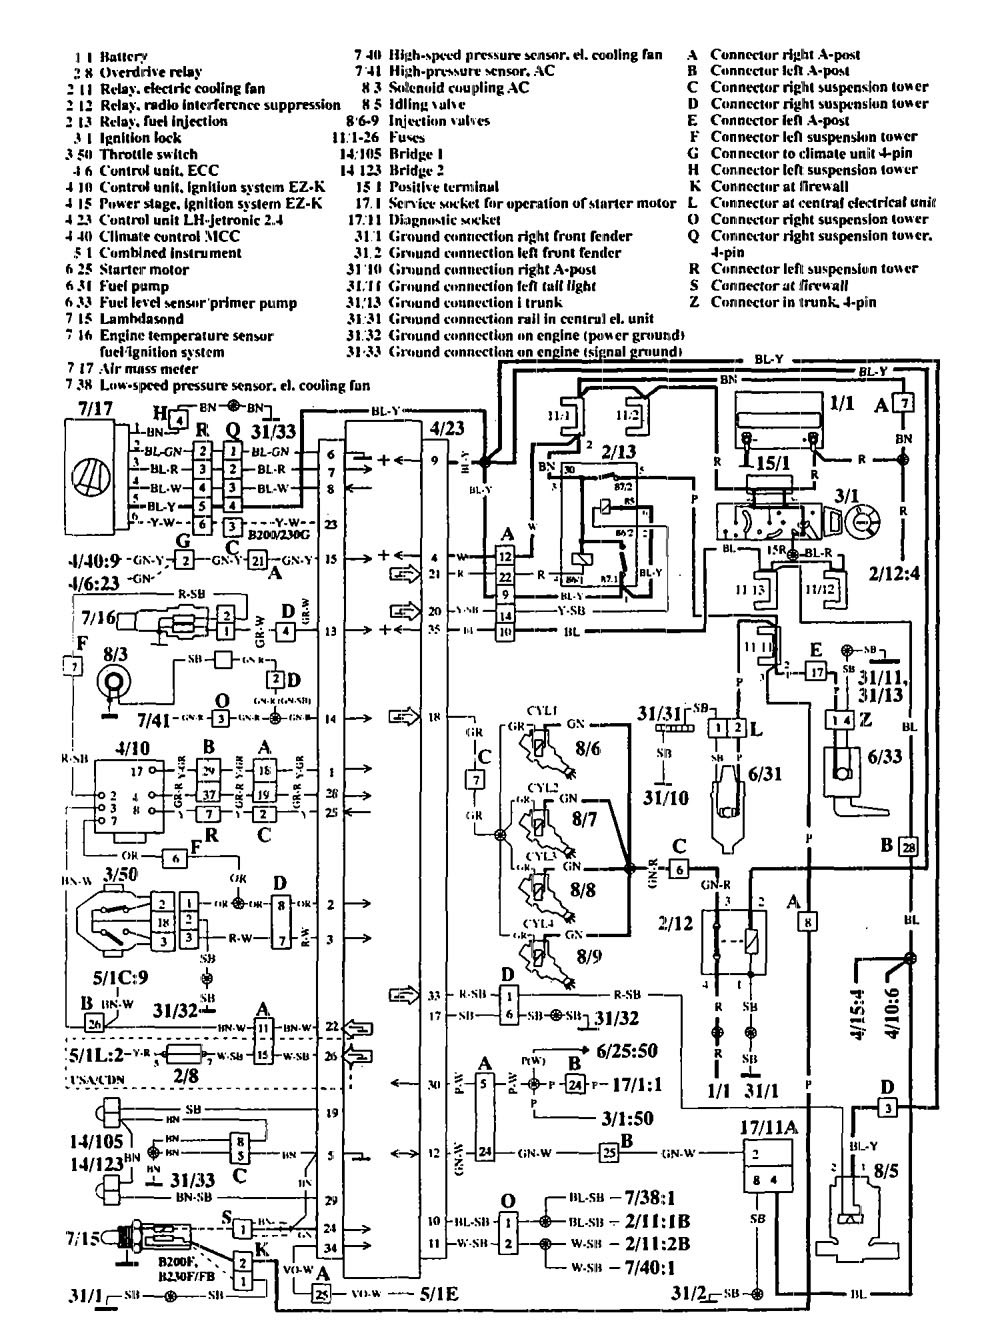 Cool volvo v40 wiring diagram ideas electrical and wiring magnificent volvo v40 wiring diagram images electrical and pooptronica